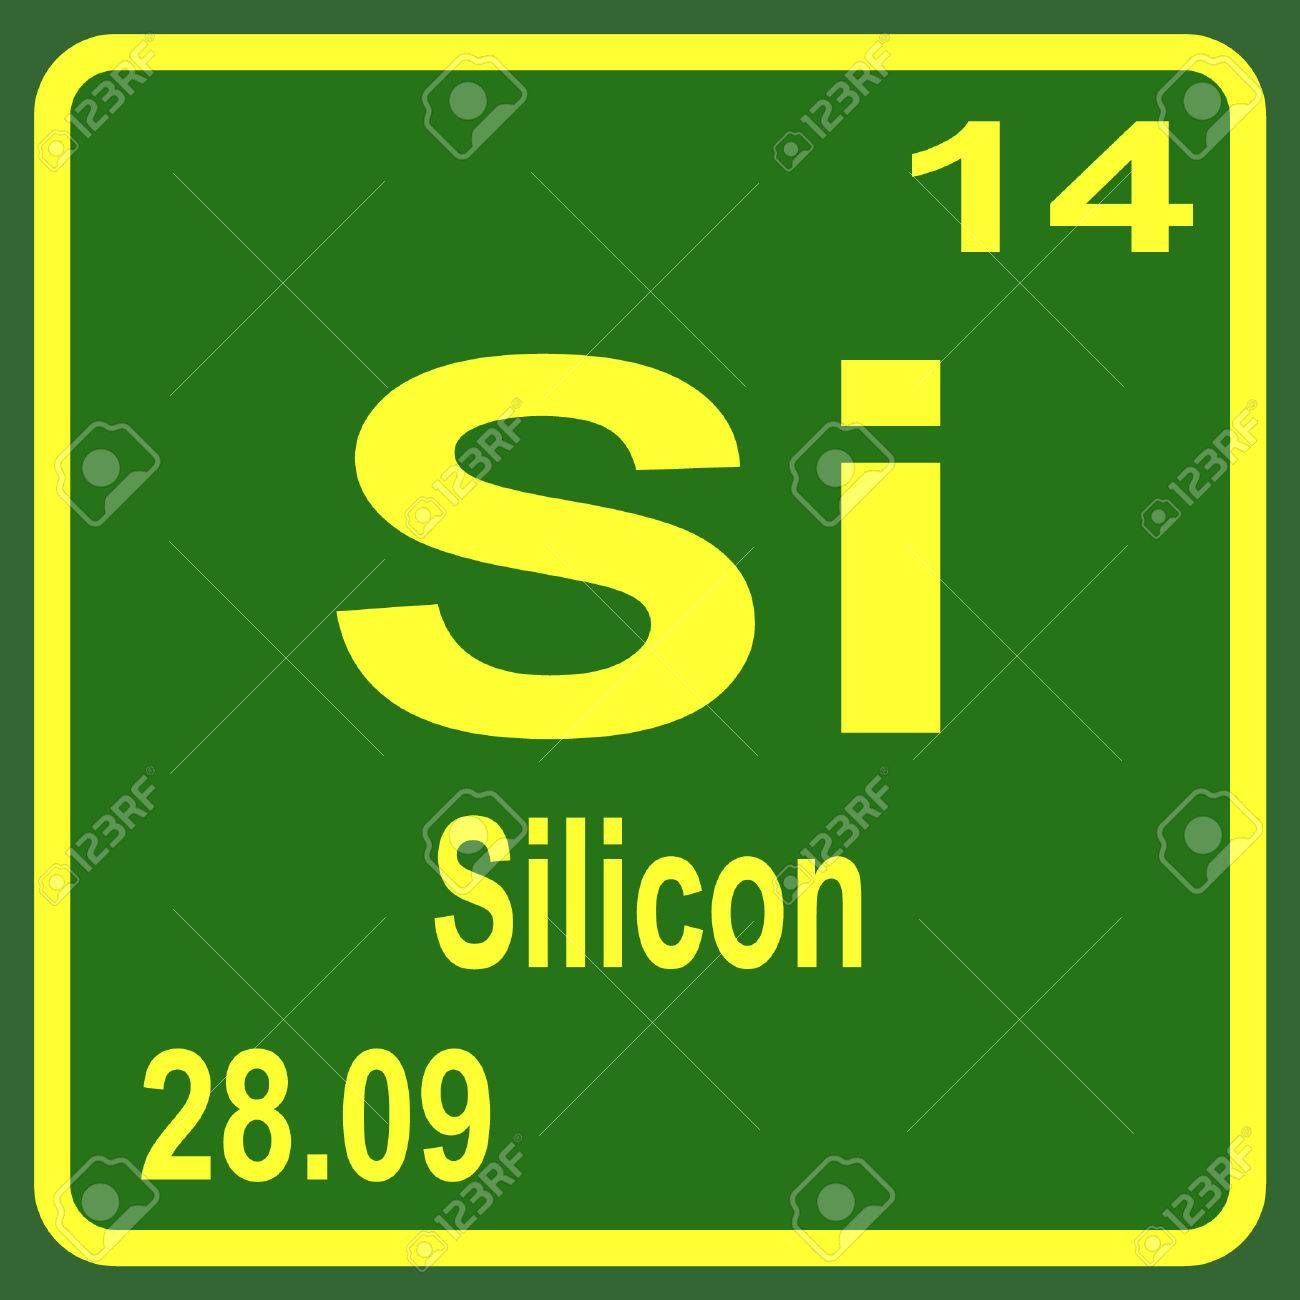 Periodic table of elements silicon royalty free cliparts periodic table of elements silicon stock vector 53901636 biocorpaavc Gallery